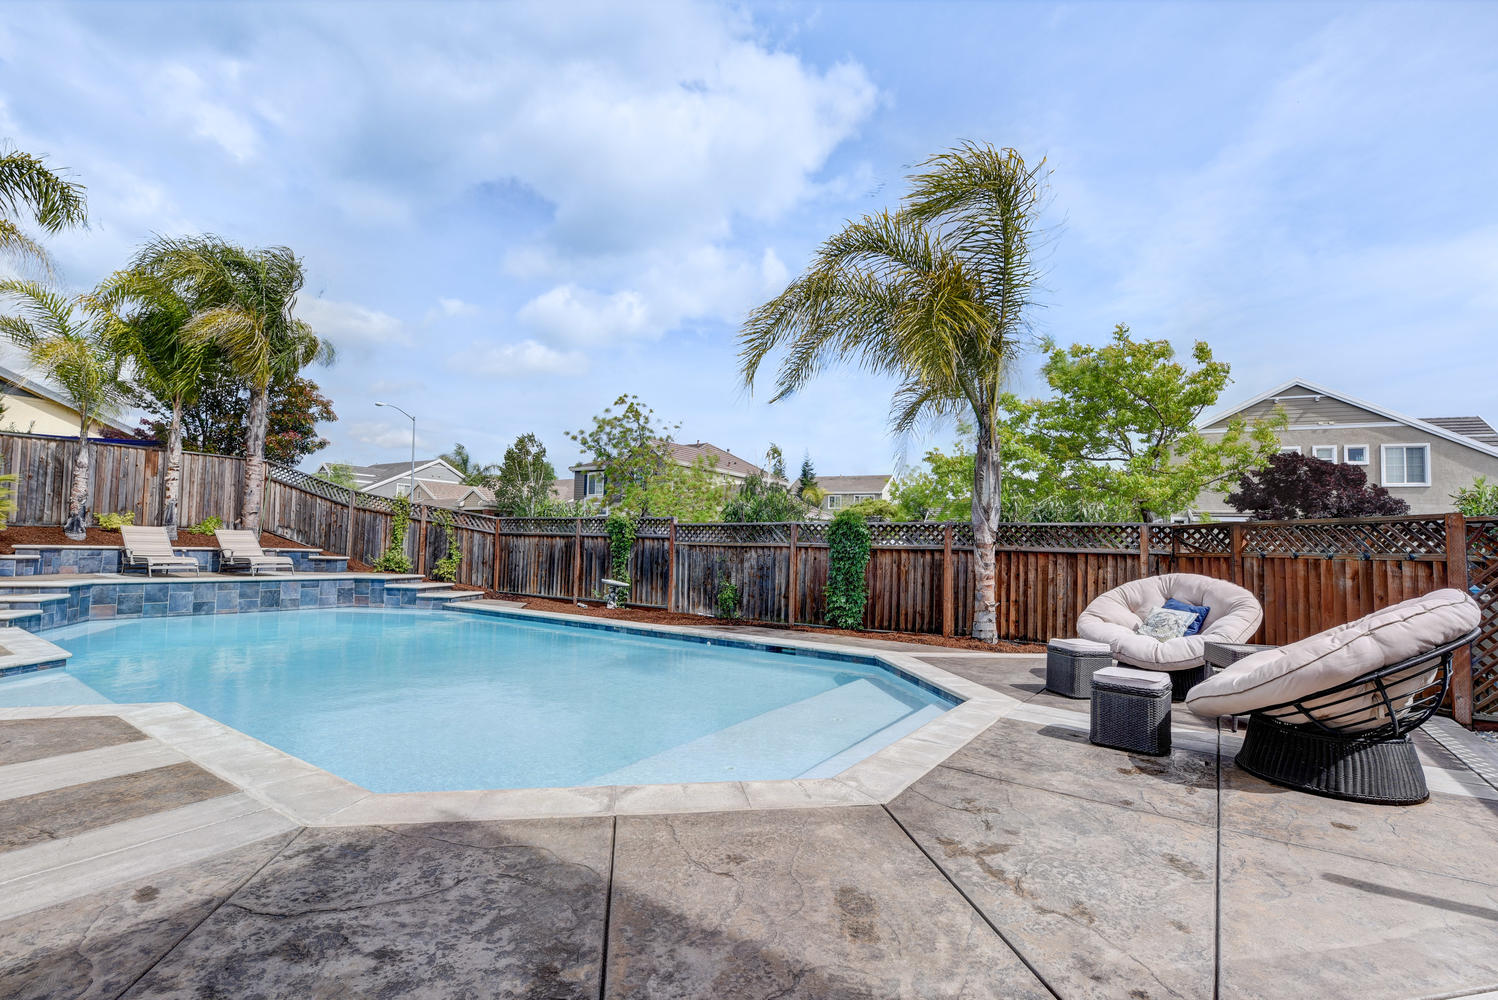 2896 Siena Rd Livermore CA-large-023-10-Pool-1498×1000-72dpi